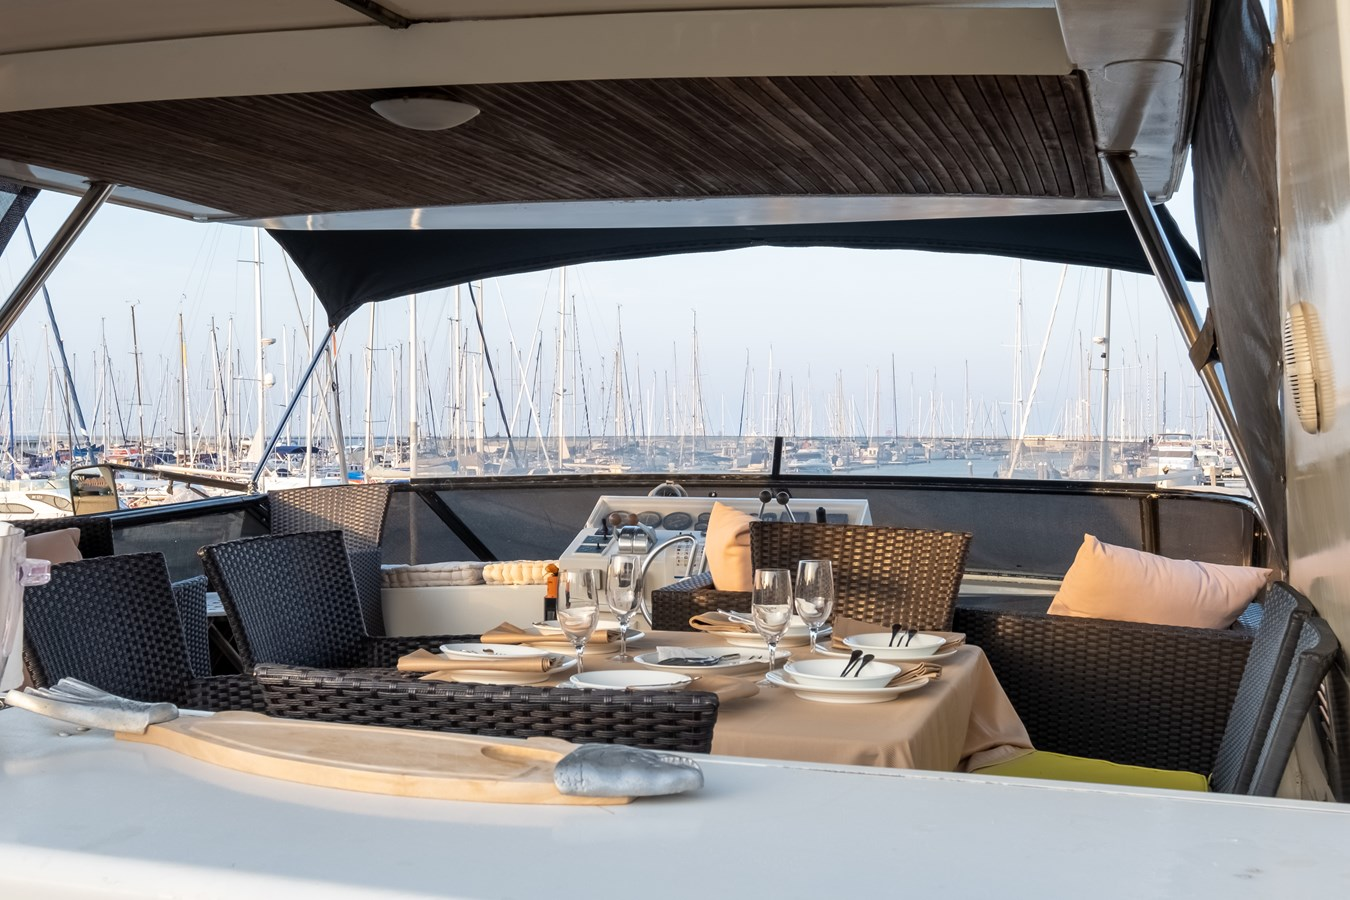 Guy Couach 2701 TIENNA - Flybridge Dining 2 1991 GUY COUACH 2701 Motor Yacht 2680658